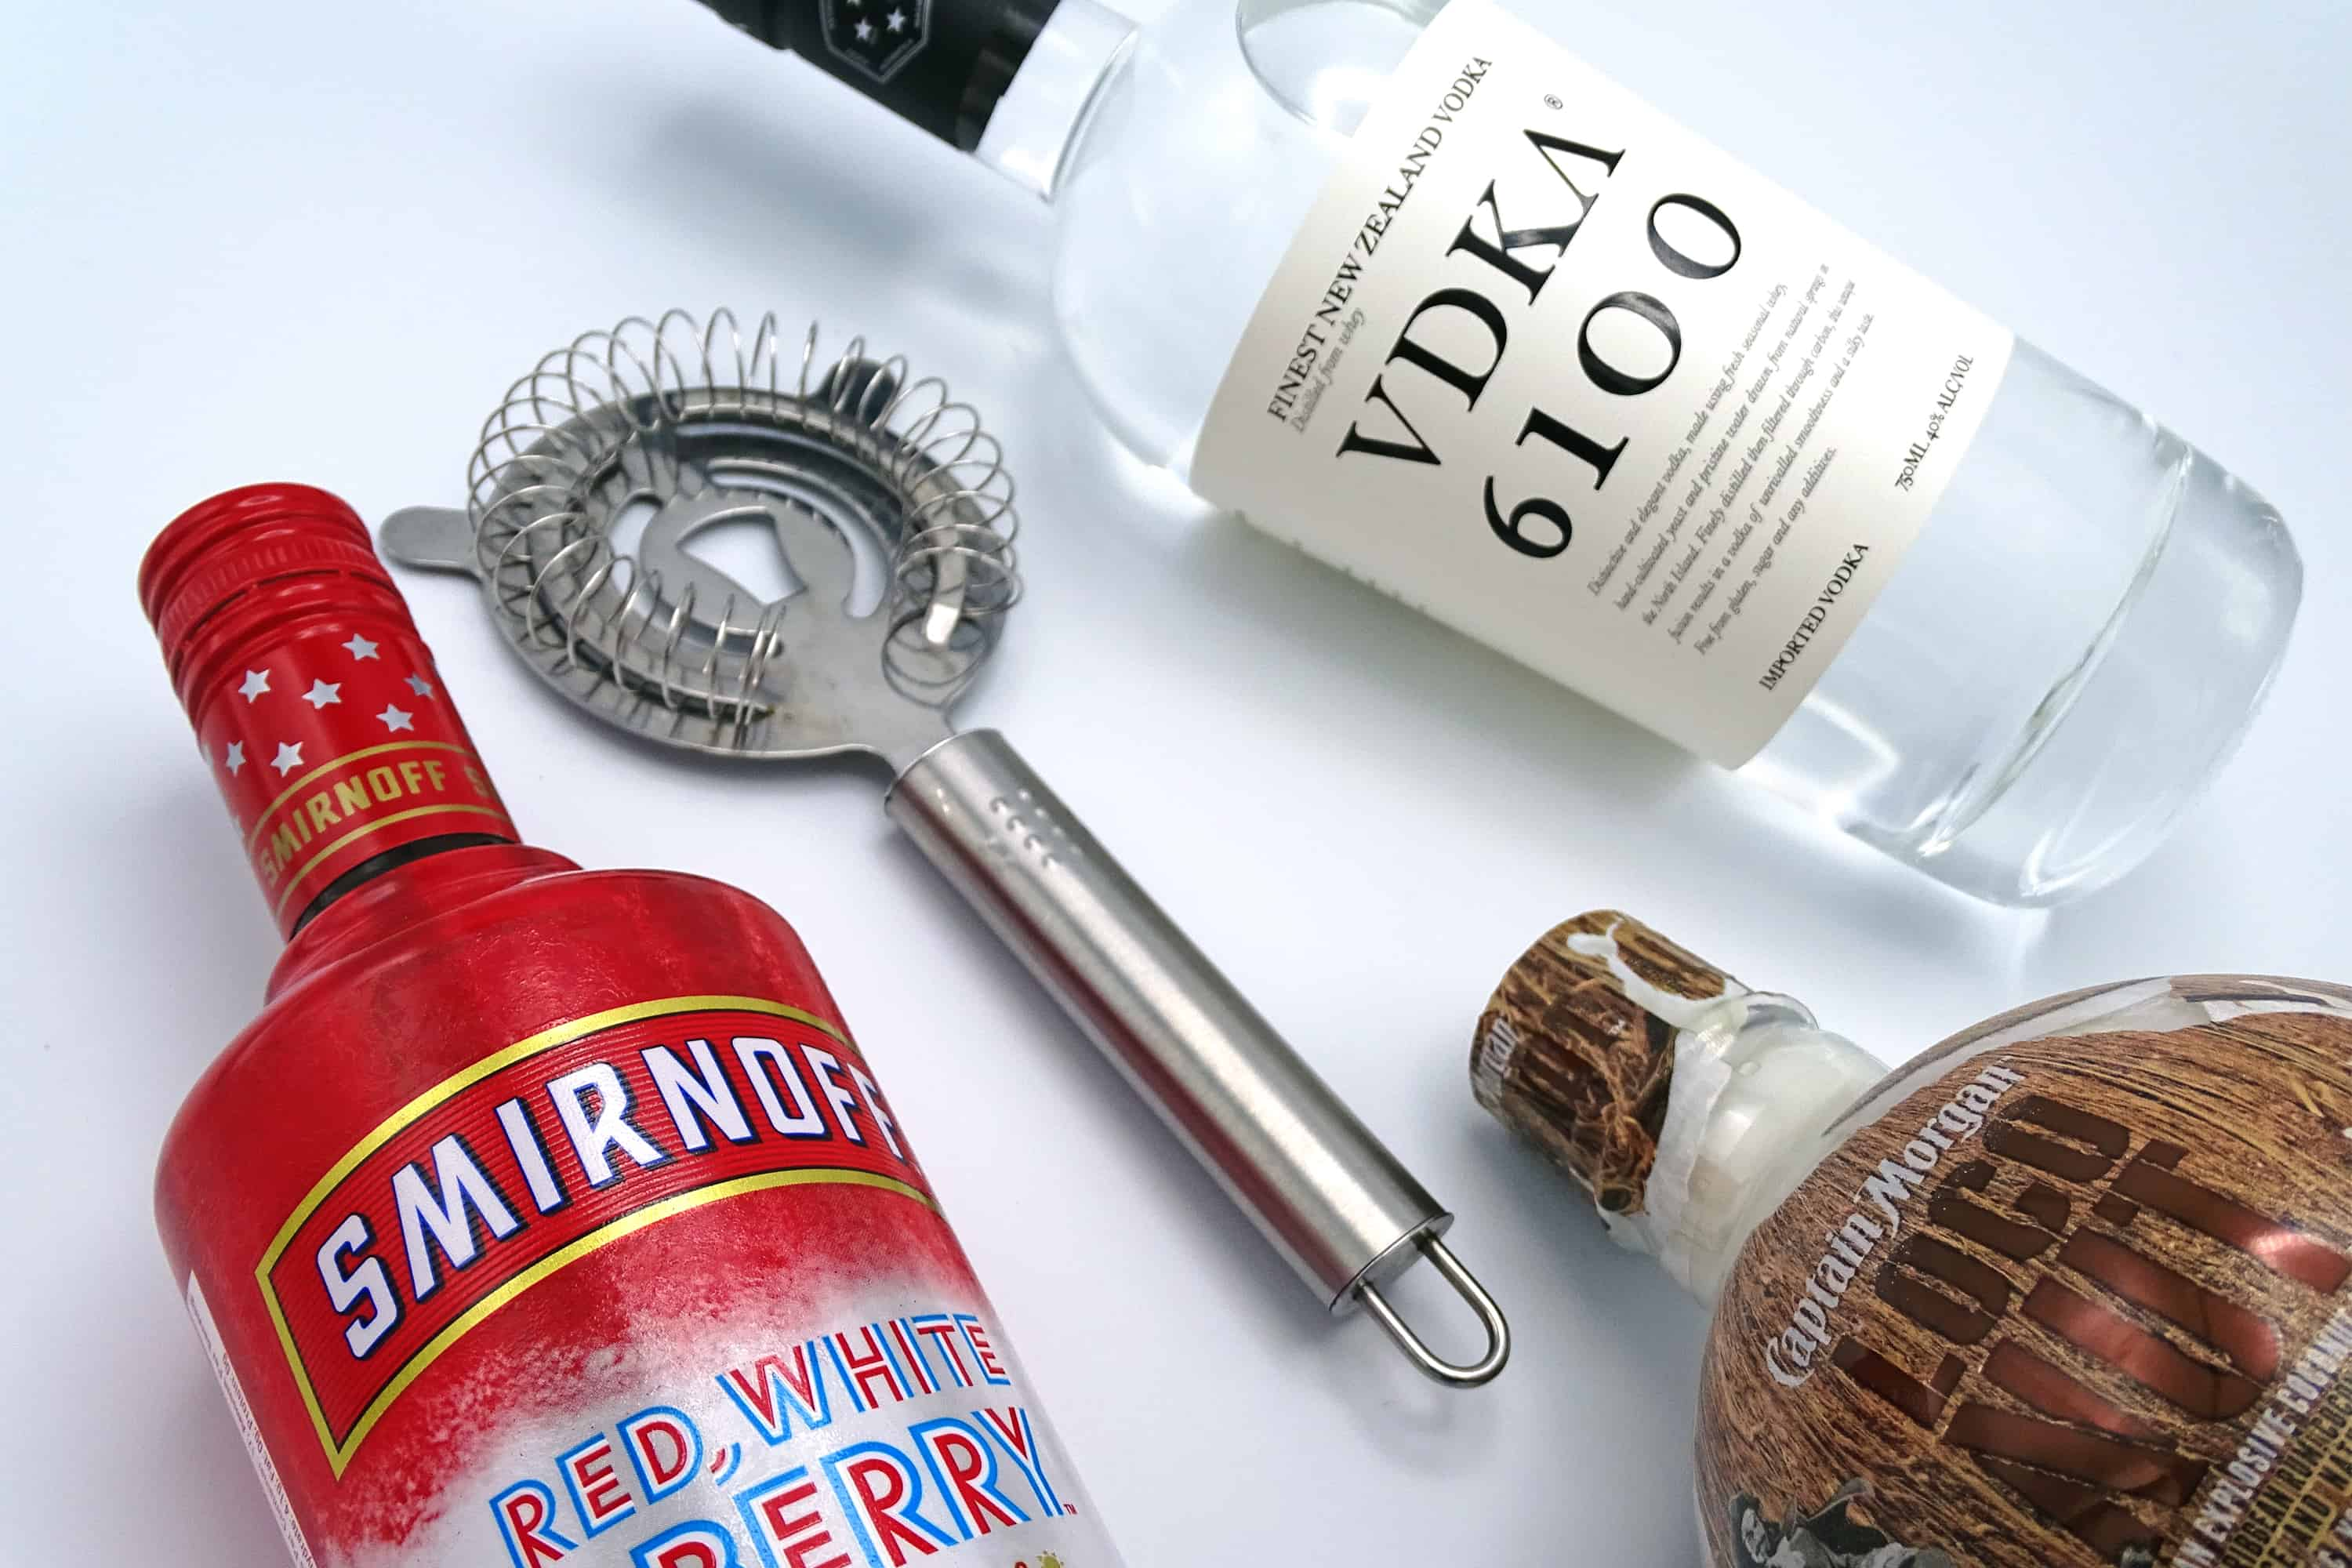 Best cocktails to celebrate 4th of July including: Smirnoff Red, White, and Berry bottle. Cocktail strainer. VDKA 6100 bottle. Captain Morgan Loco Nut bottle.